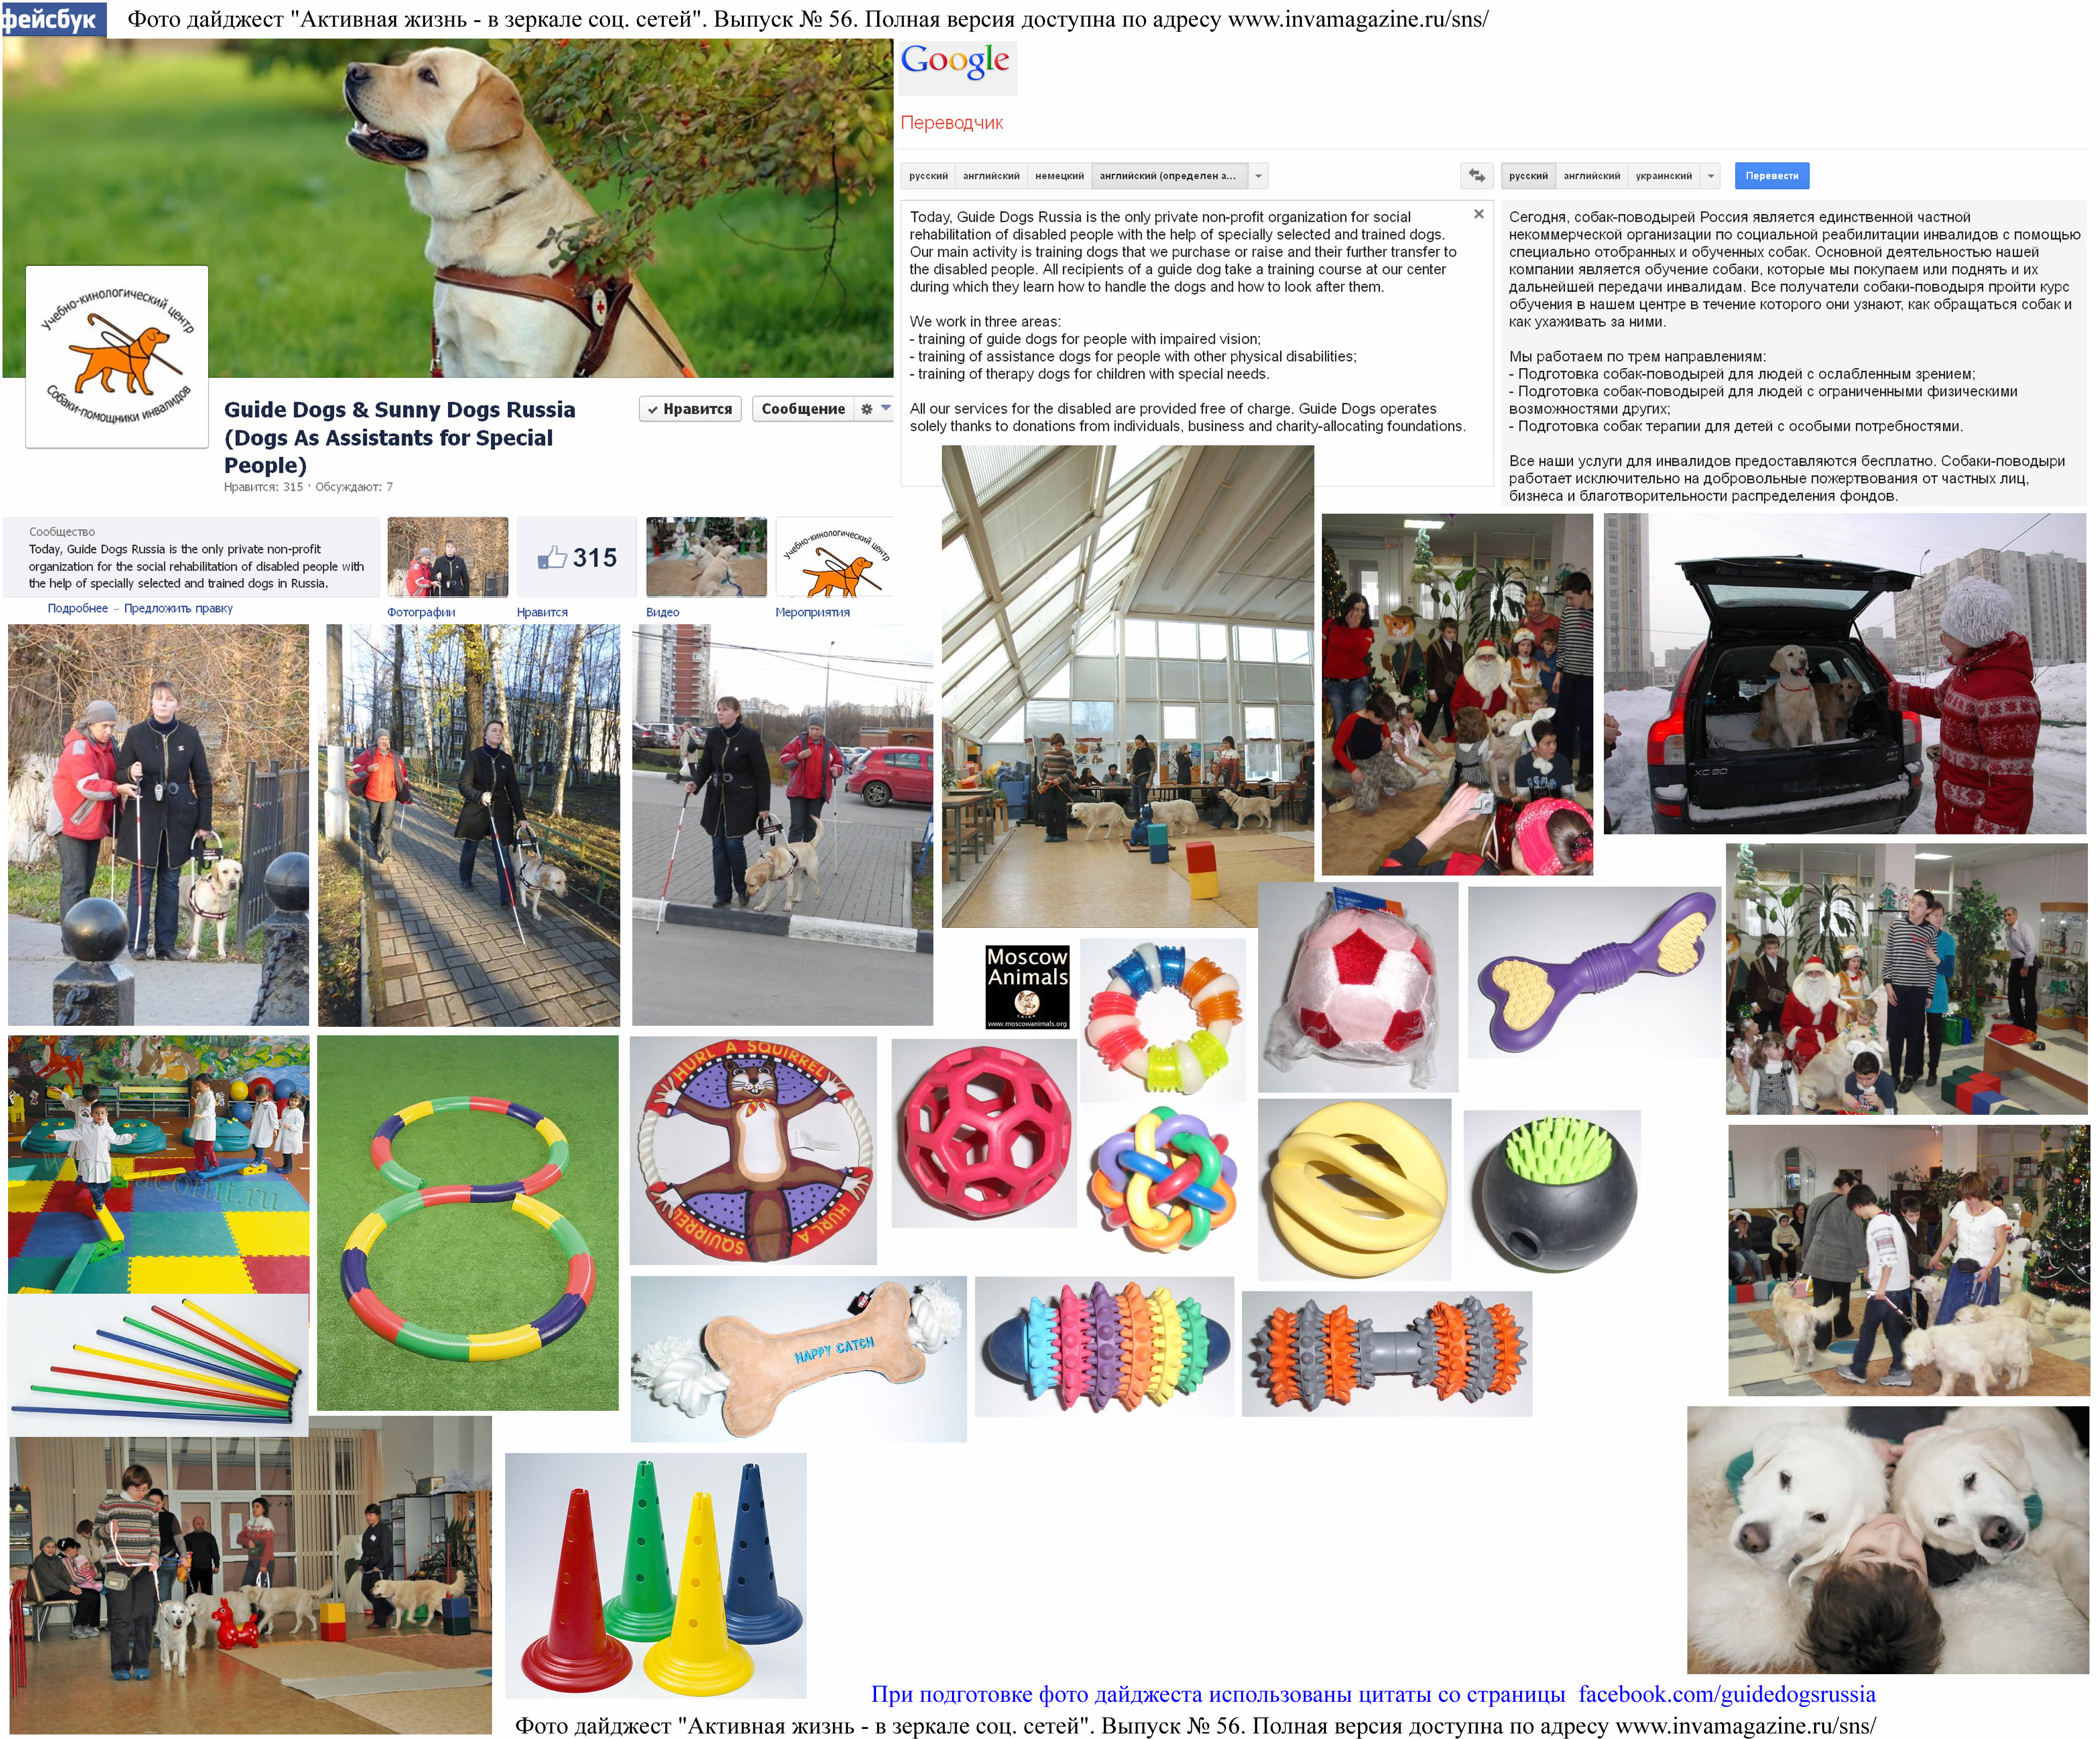 Фото дайджест страницы Guide Dogs & Sunny Dogs Russia (Dogs As Assistants for Special People)